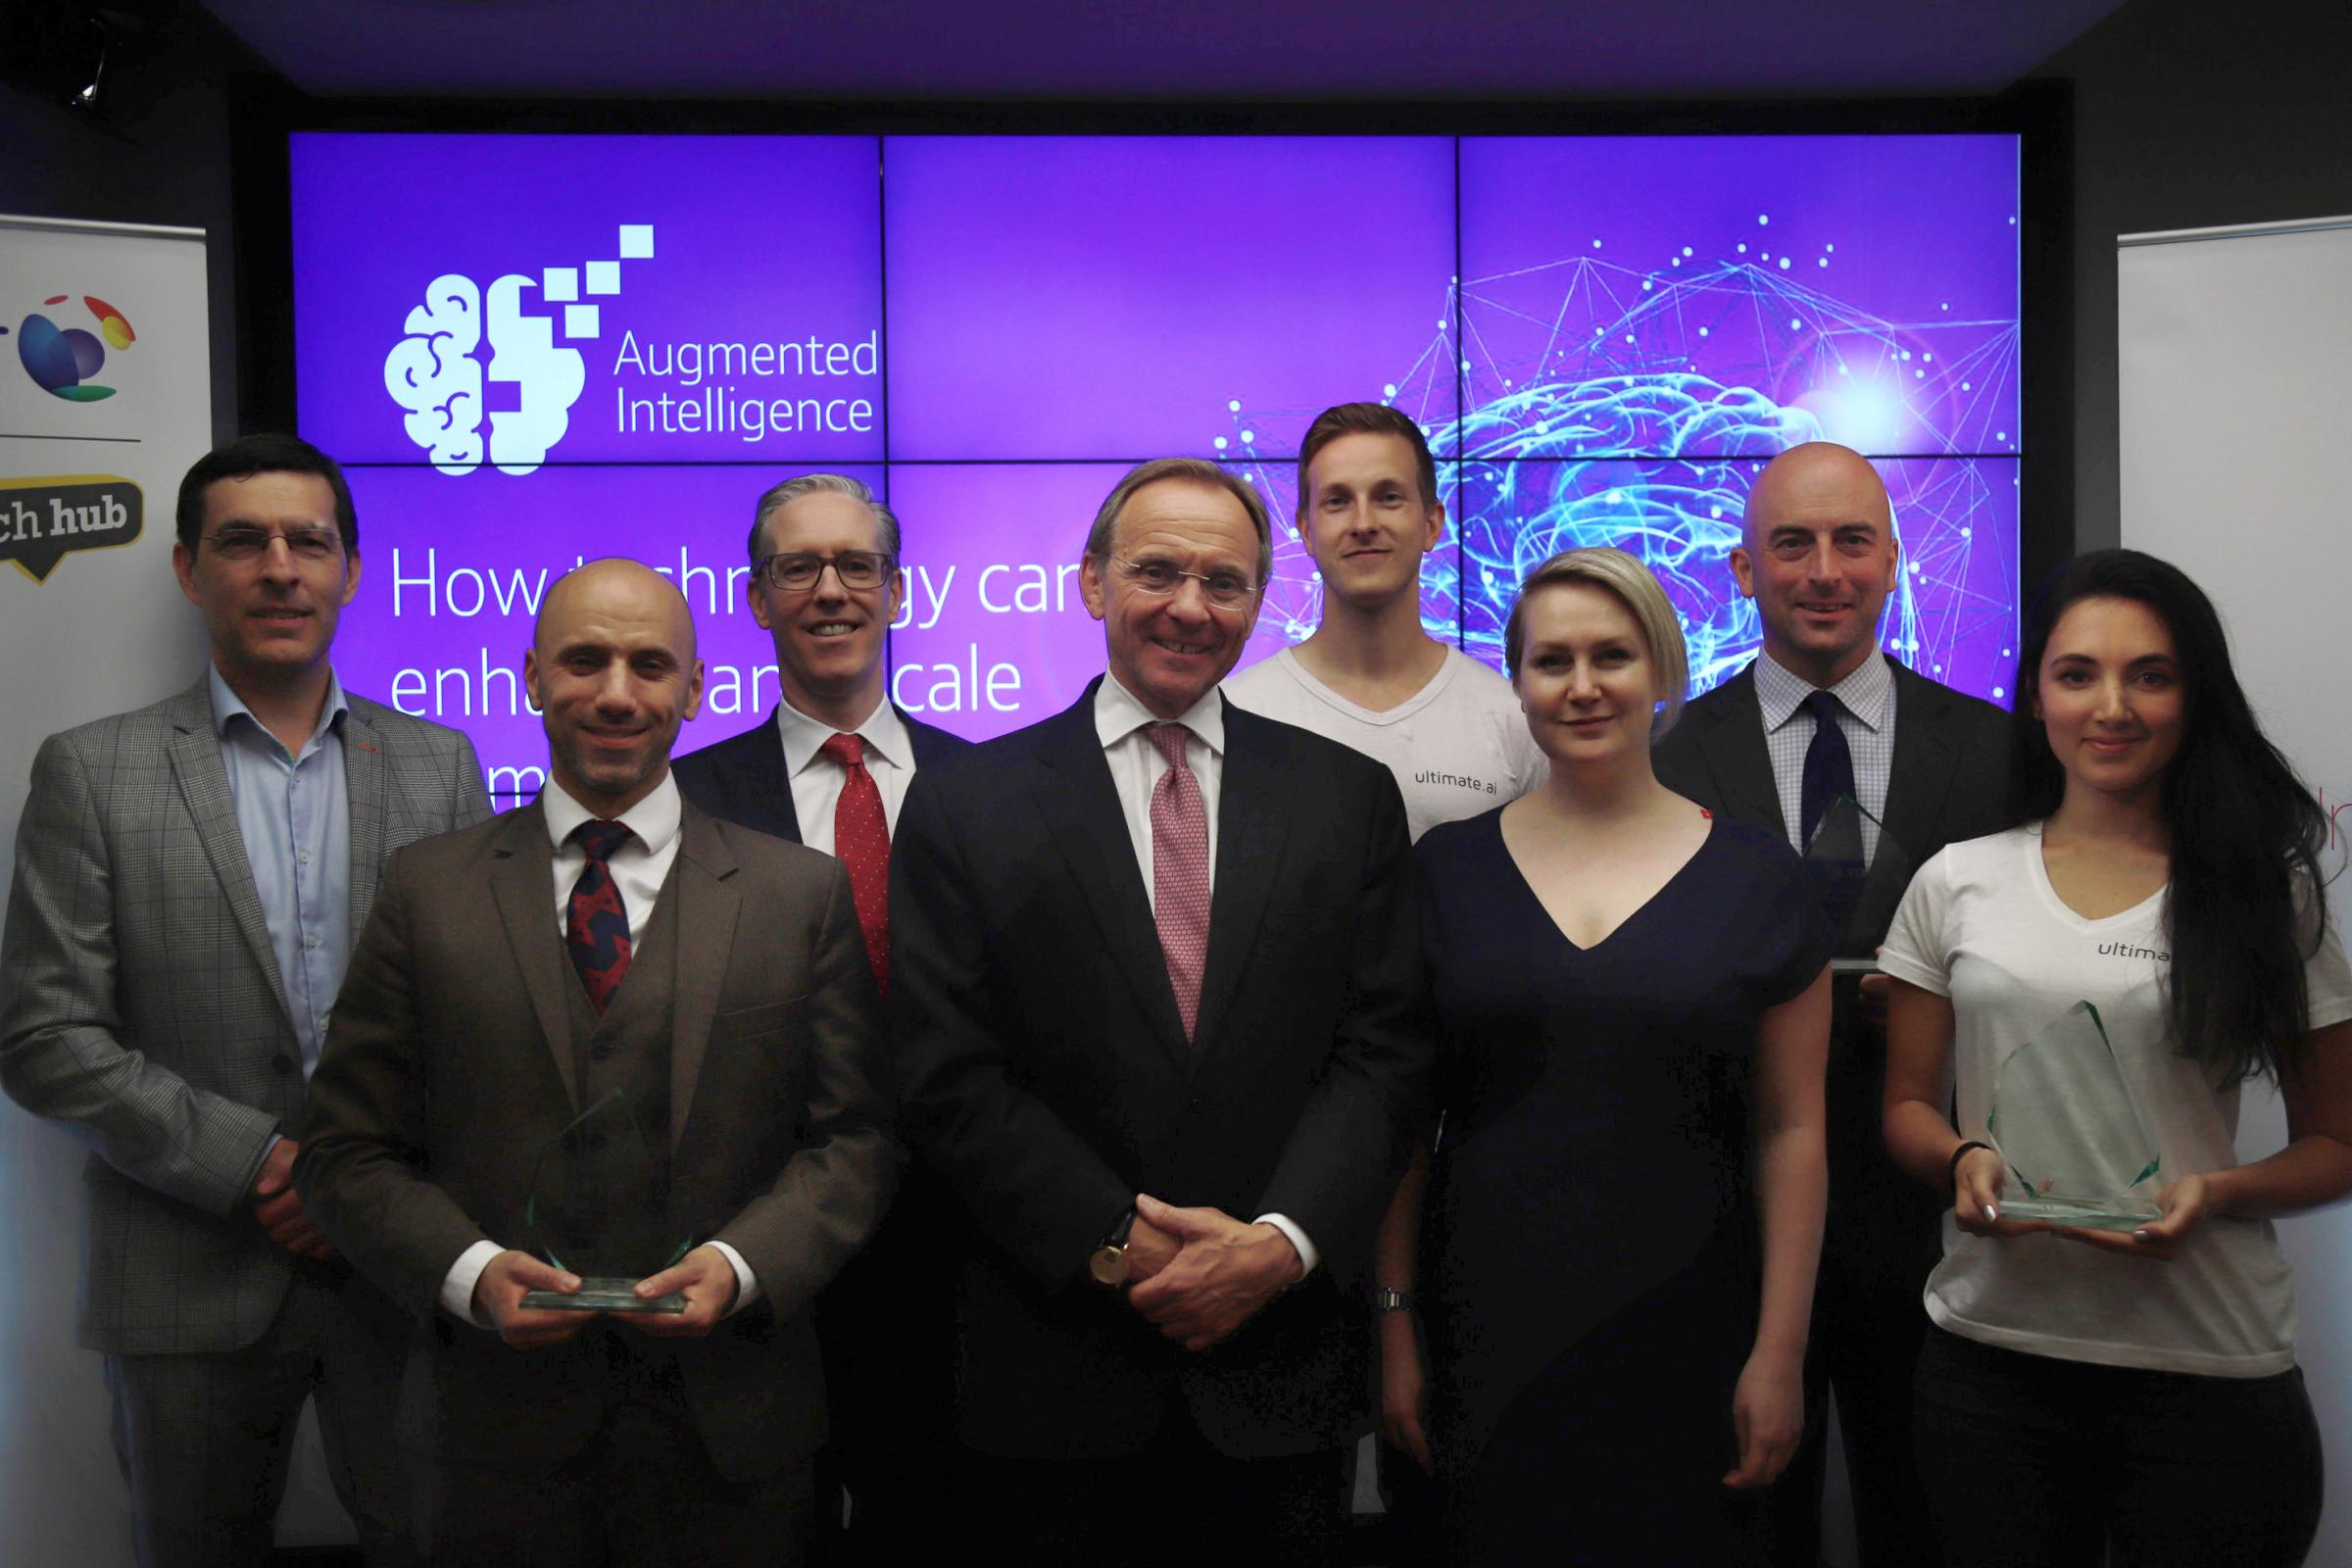 Pictured left to right: Simon Godfrey of BT, Dan Sola of Archangel, Colm O'Neill of BT, John Manzoni of the Cabinet Office, Reetu Kainulainen of ultimate.ai, Elizabeth Varley of TechHub, Alastair Harvey of Cortexica and Sarah Al-Hussaini of ultimate